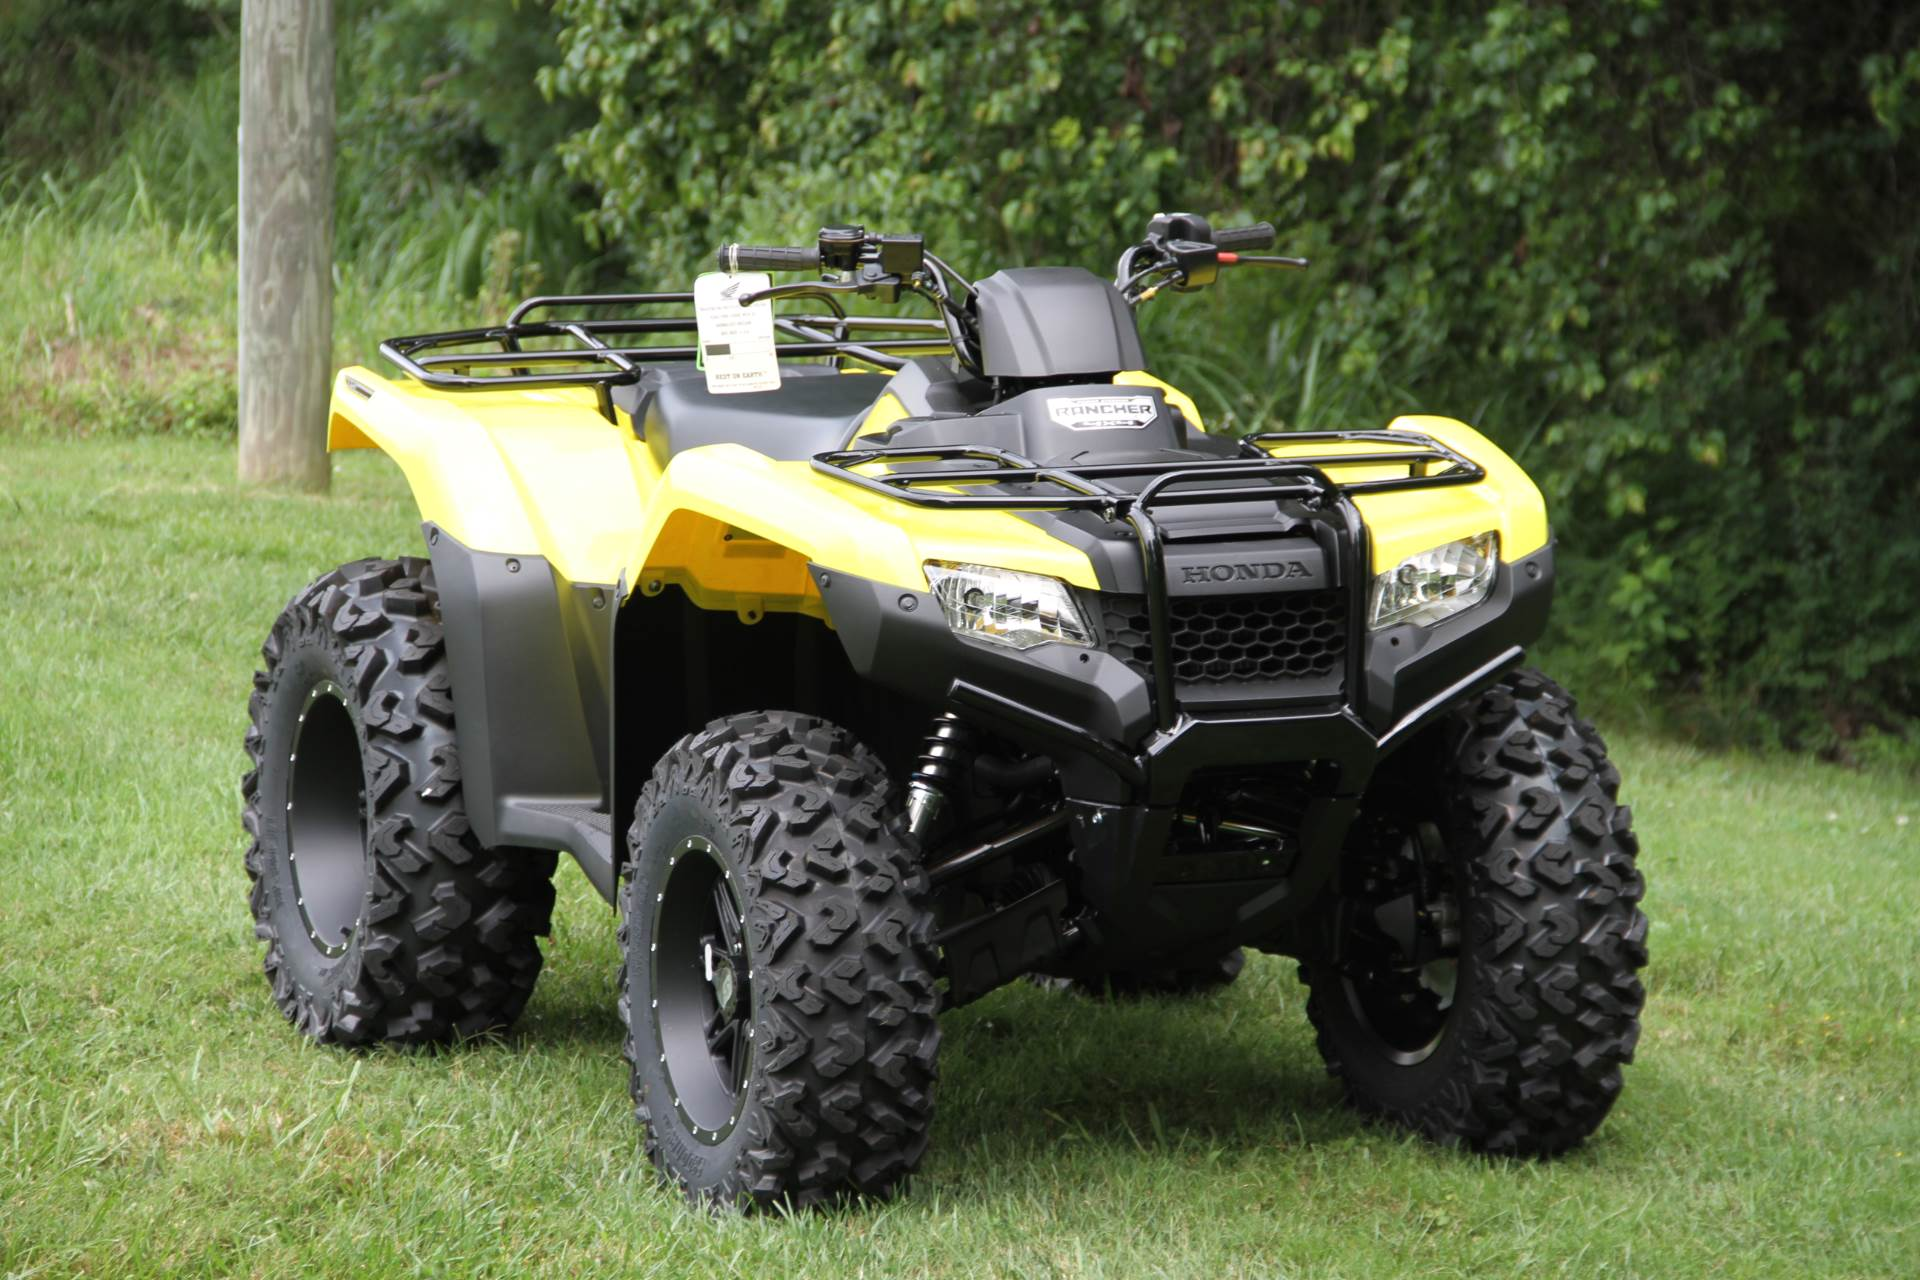 2018 Honda TRX420FA6 in Hendersonville, North Carolina